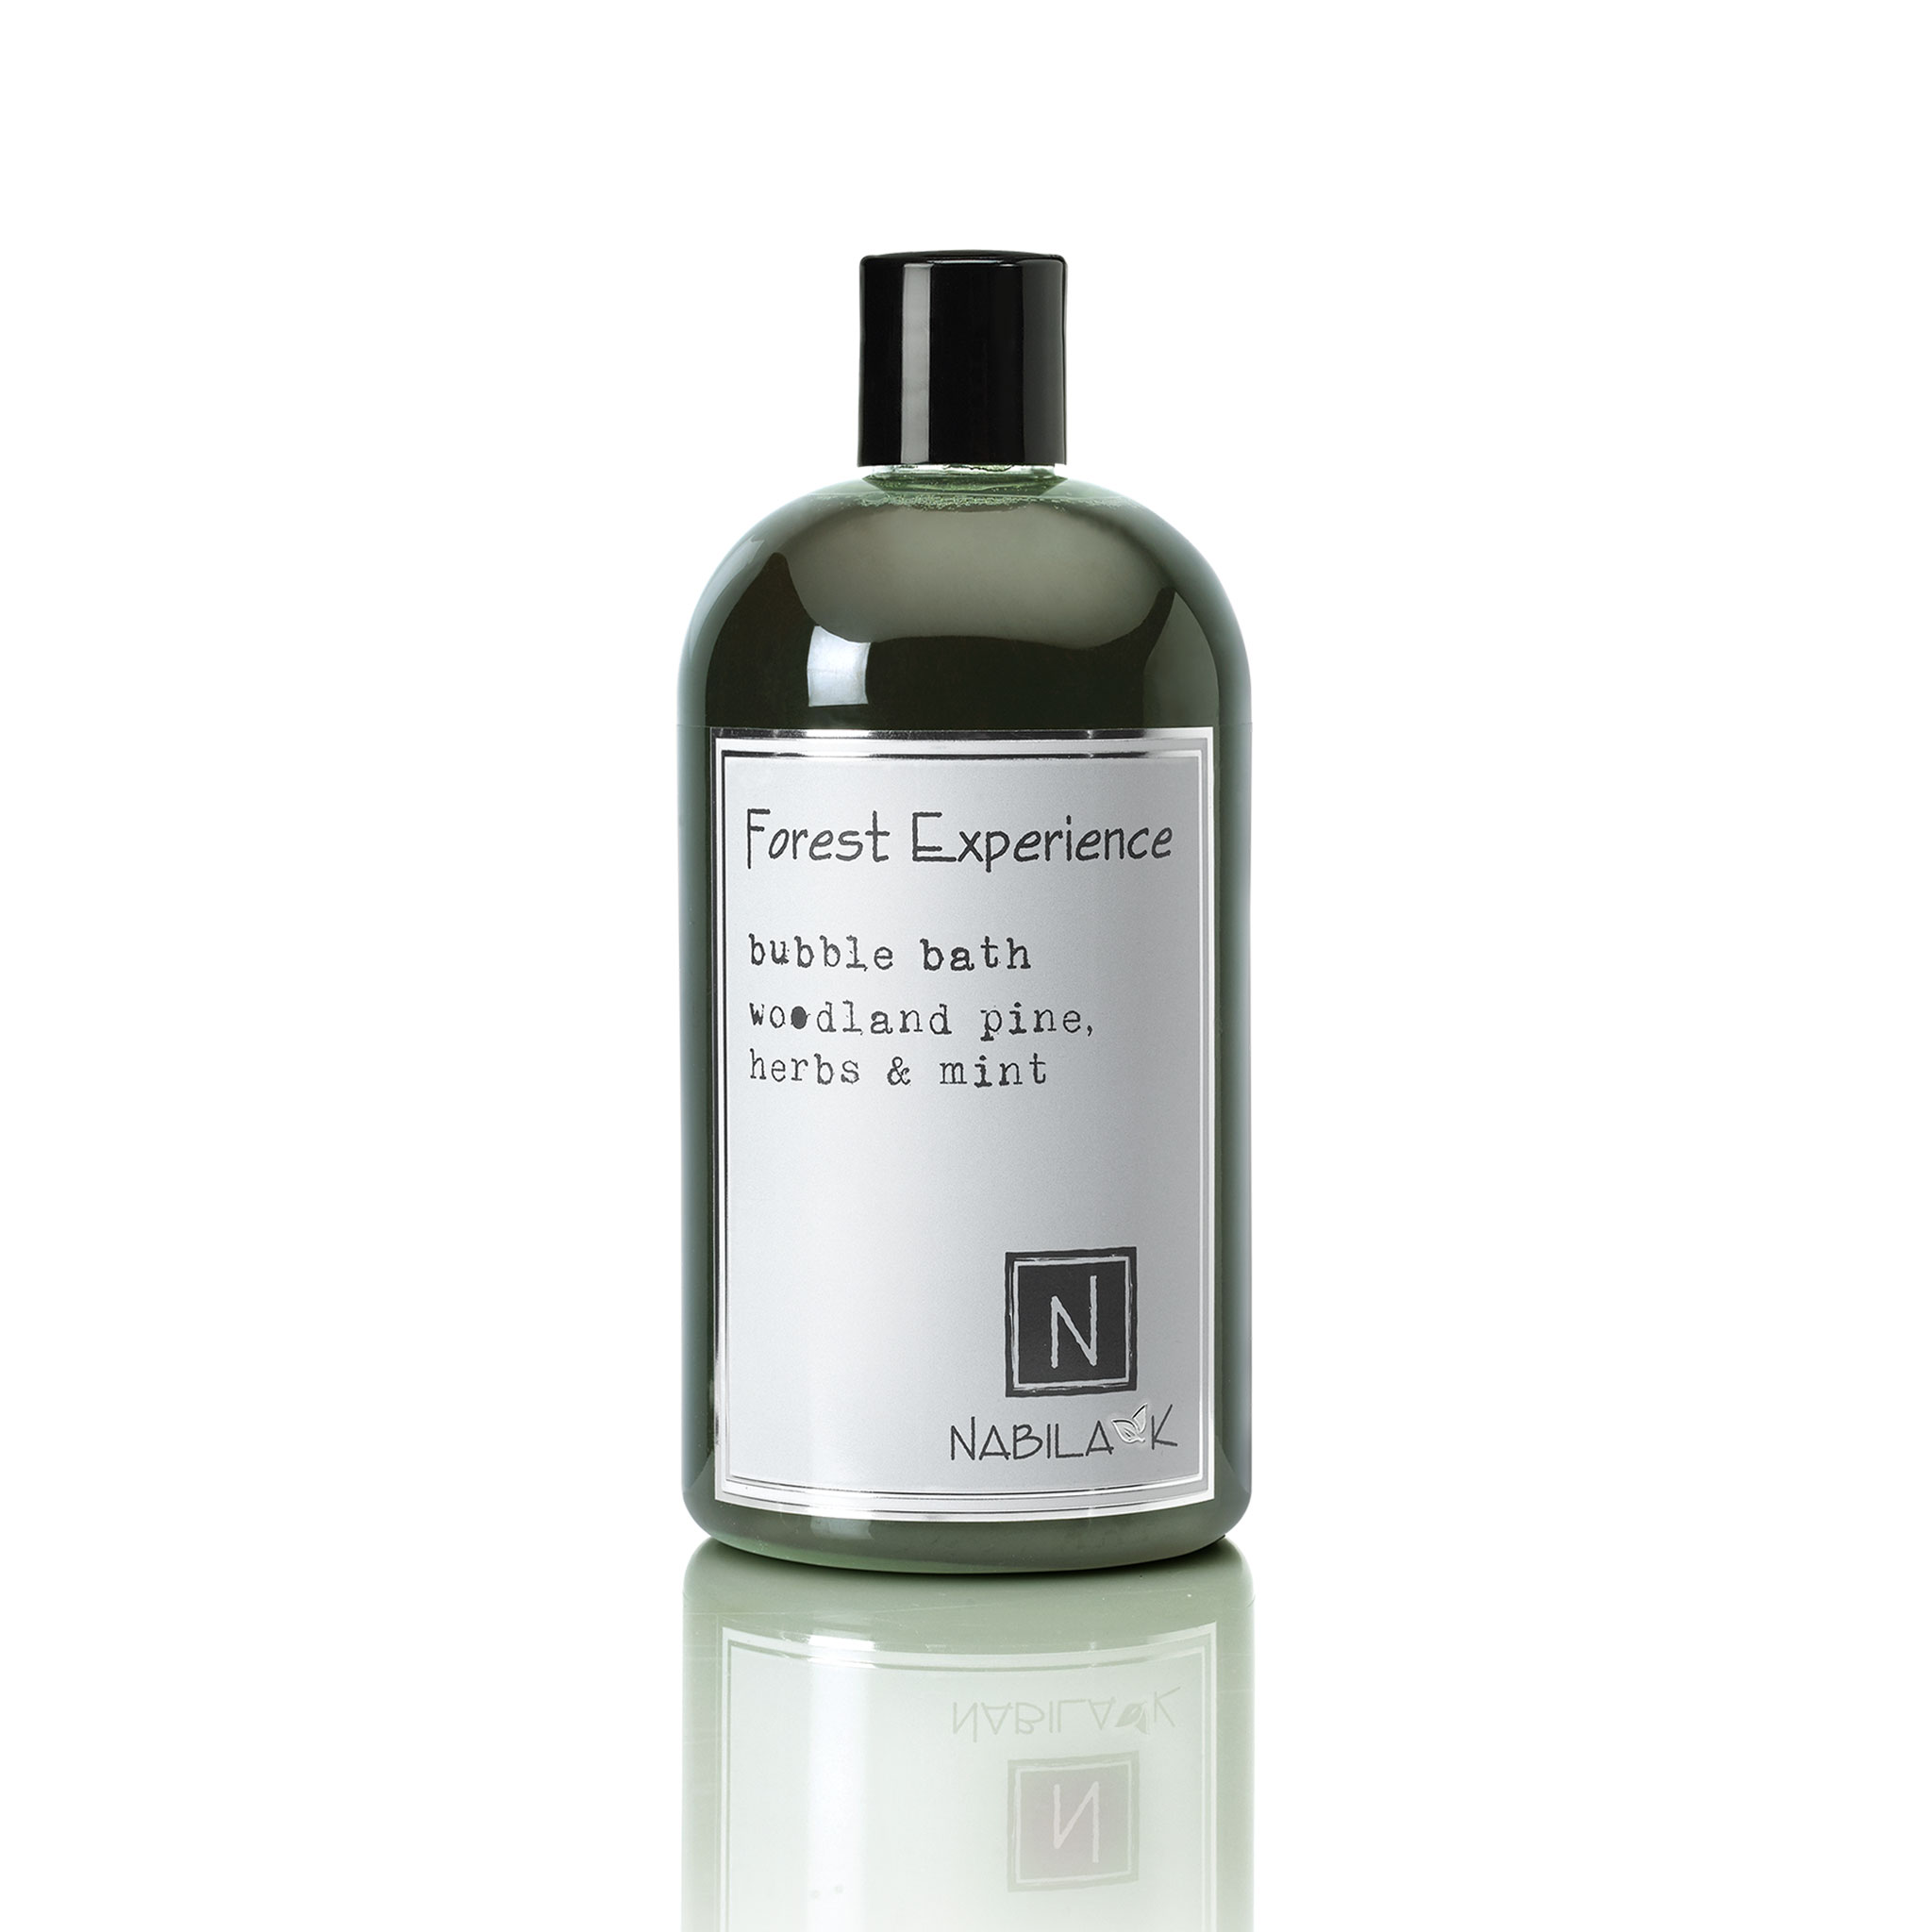 1 16oz bottle of forest experience bubble bath woodland pine, herbs and mint